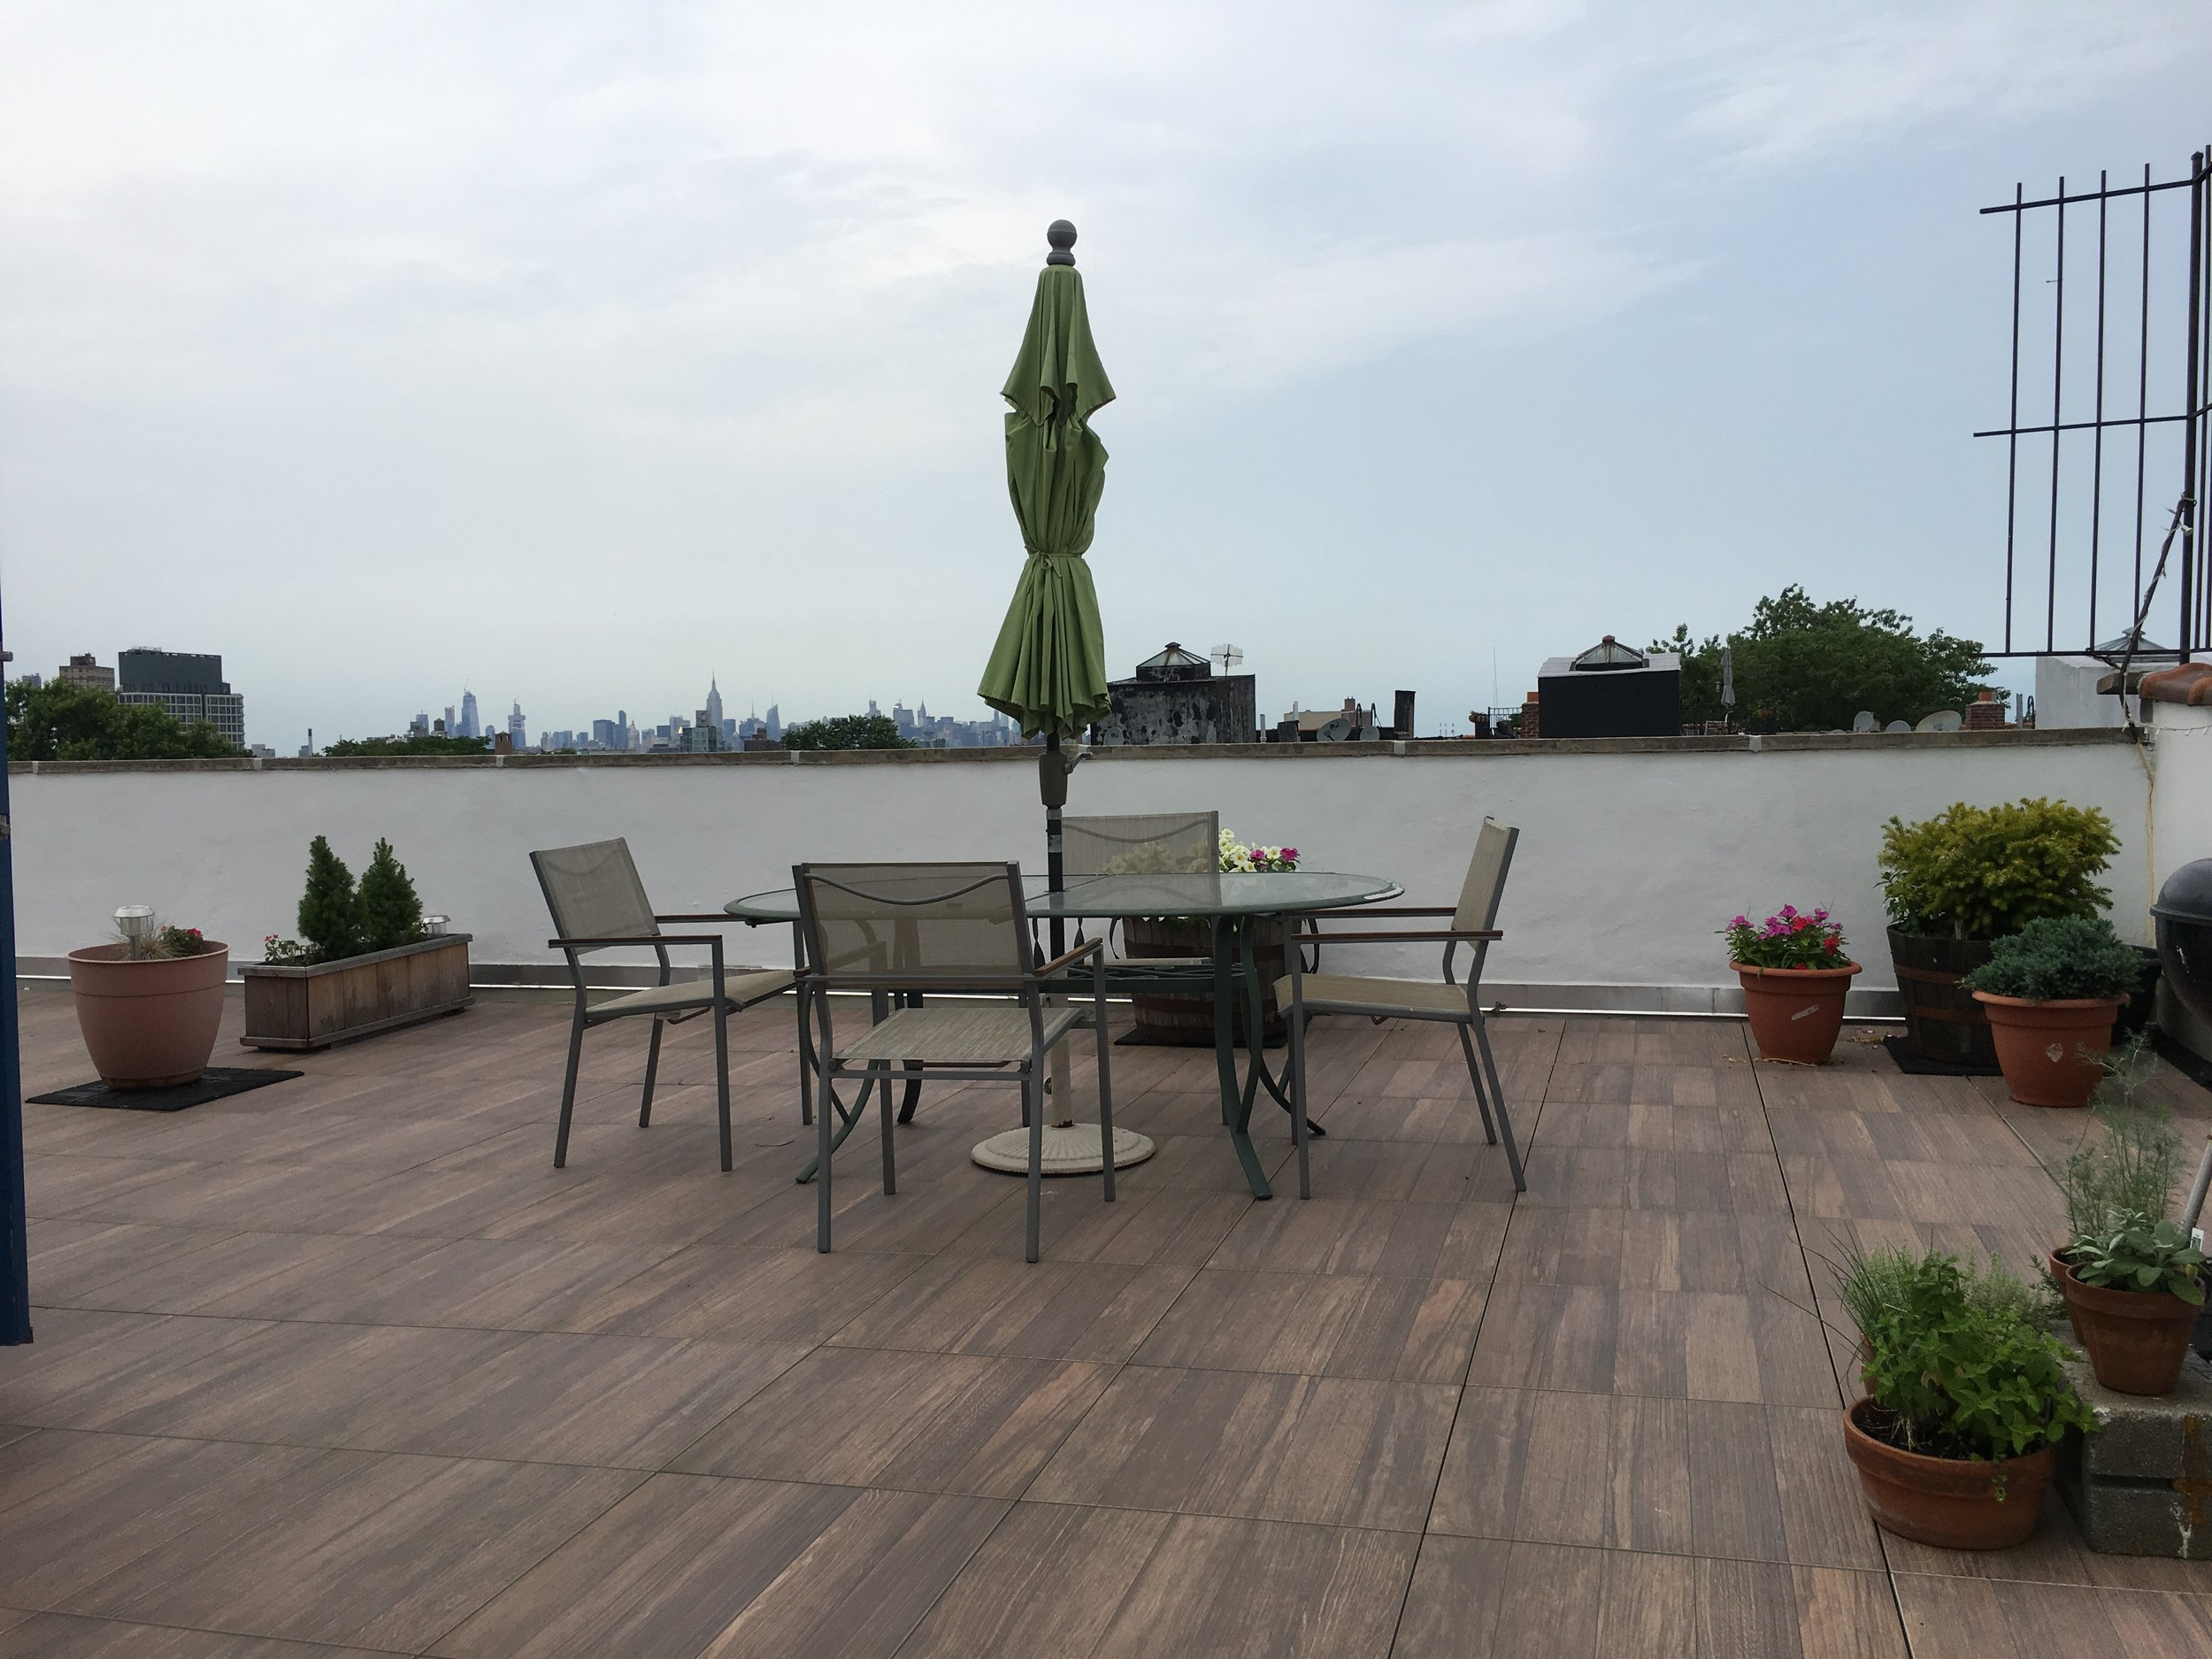 home improvement projects, and our roof deck